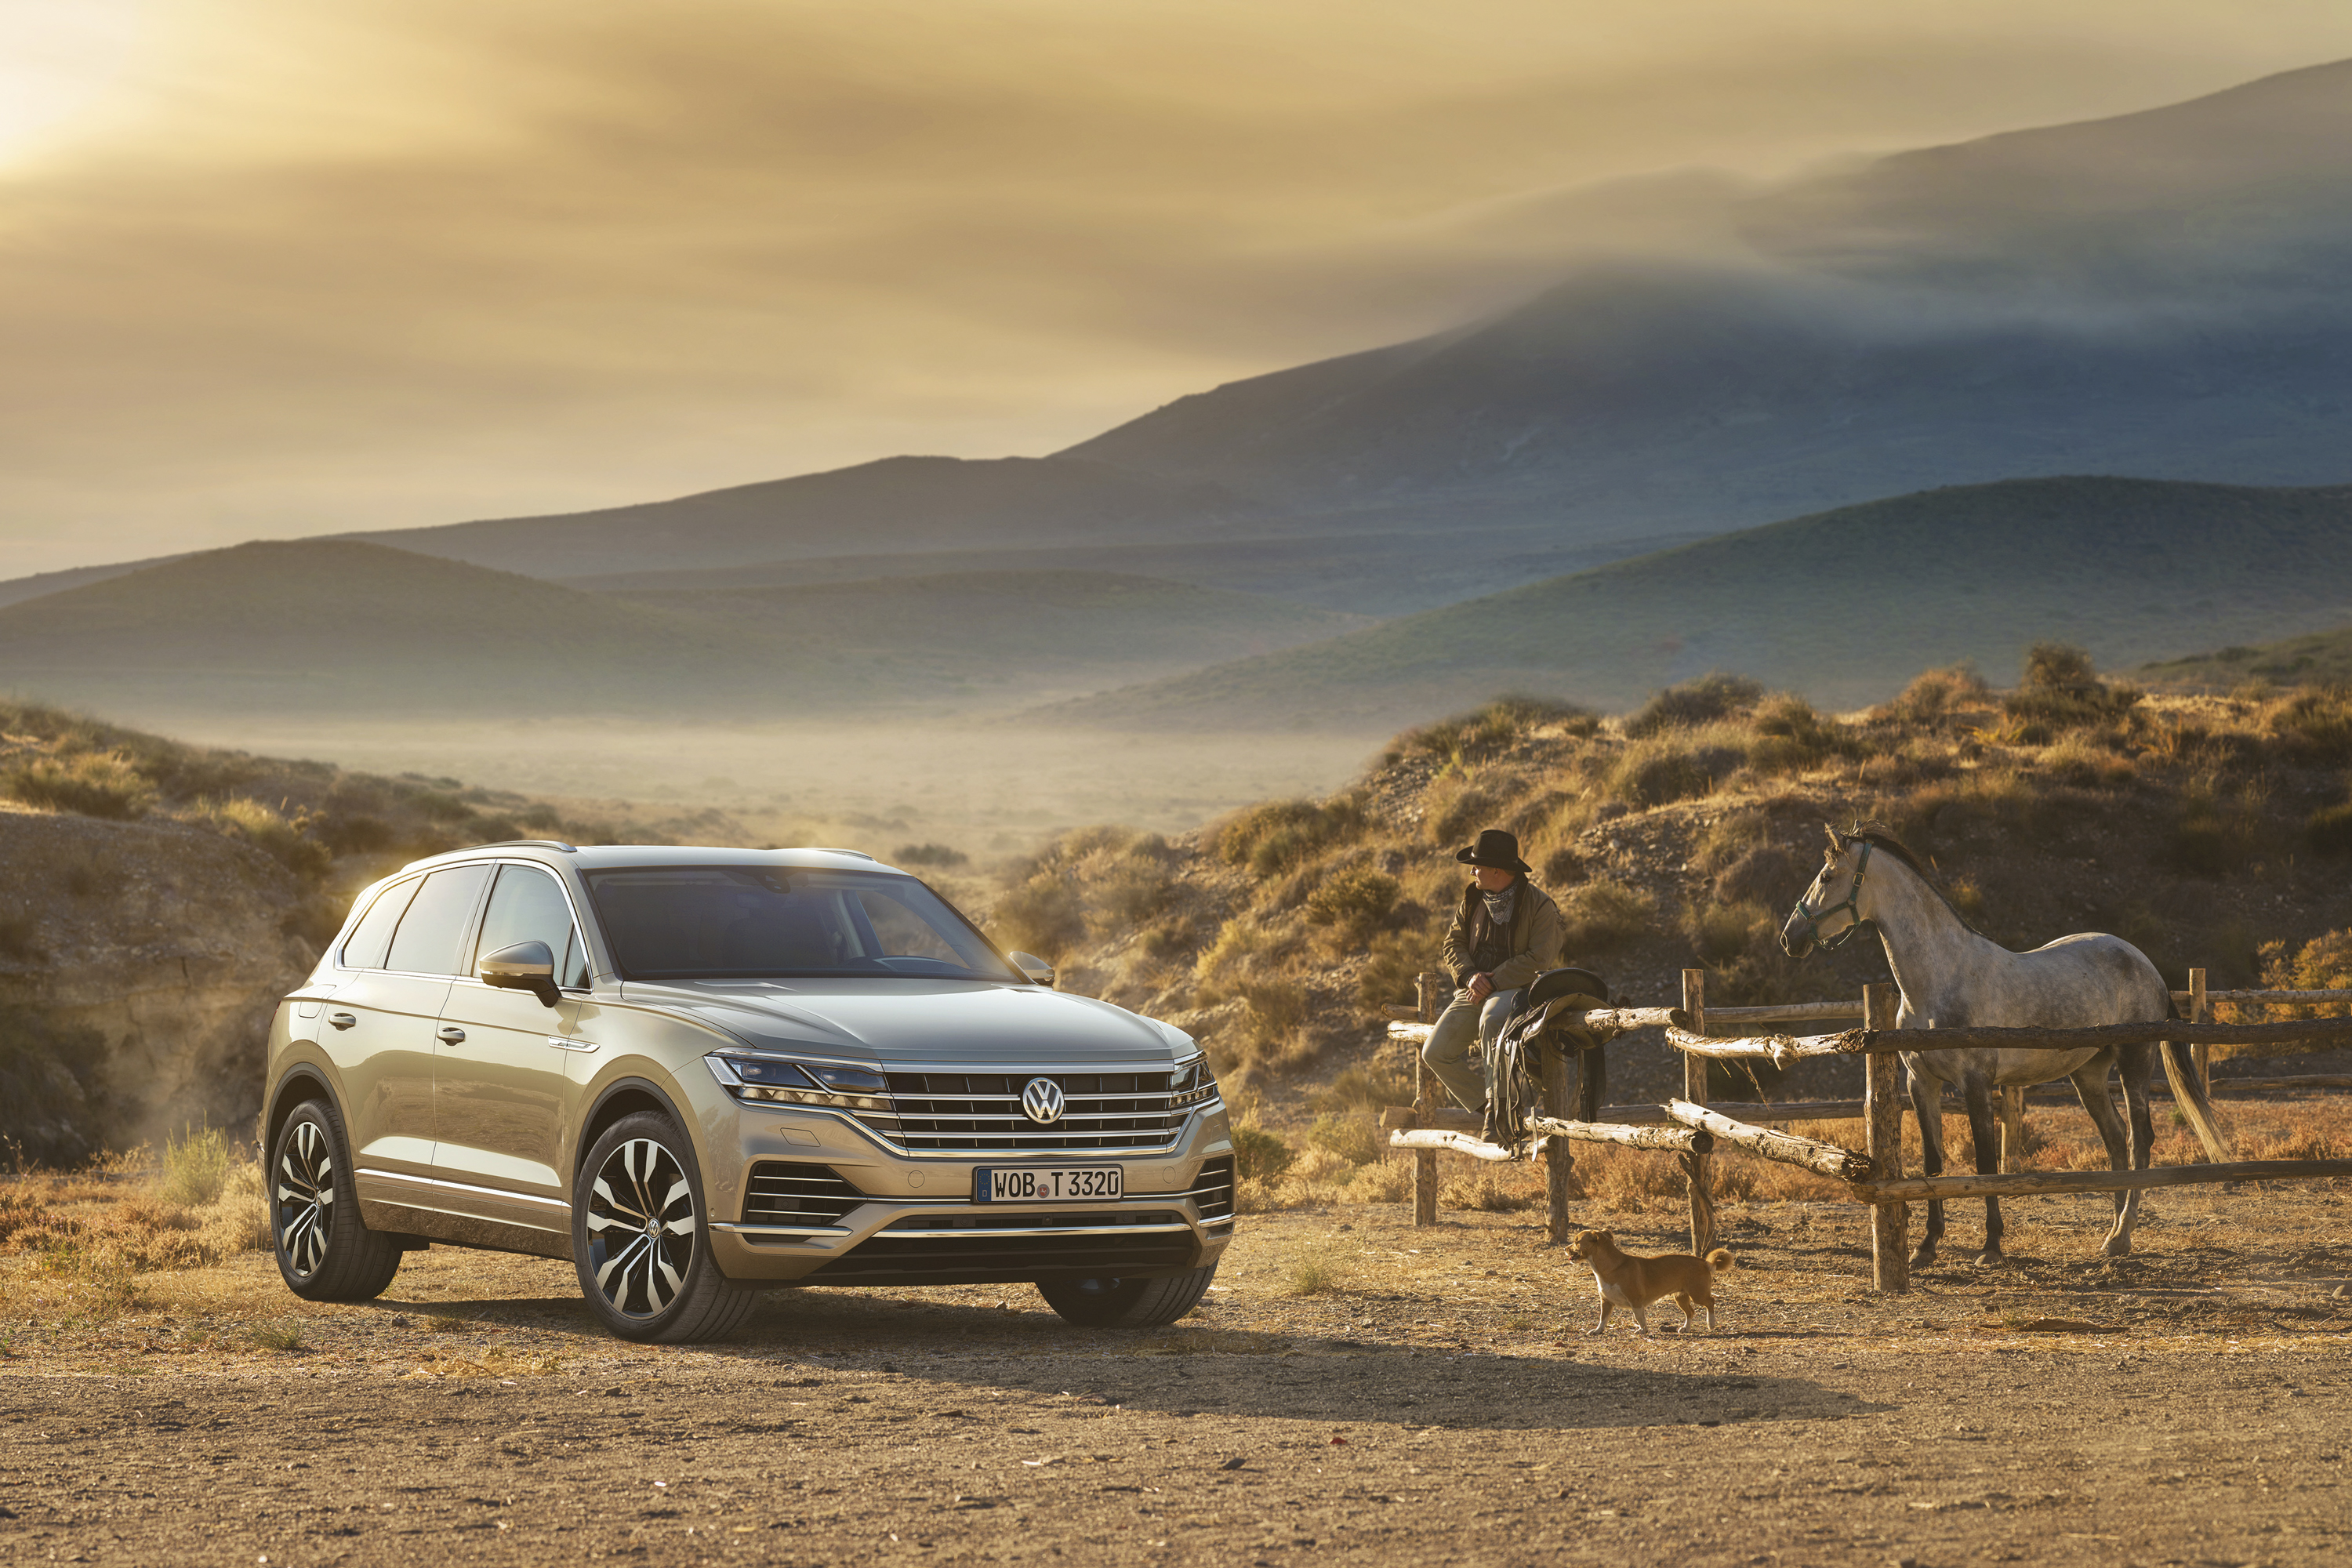 Wallpaper Of The Day: 2019 Volkswagen Touareg | Top Speed